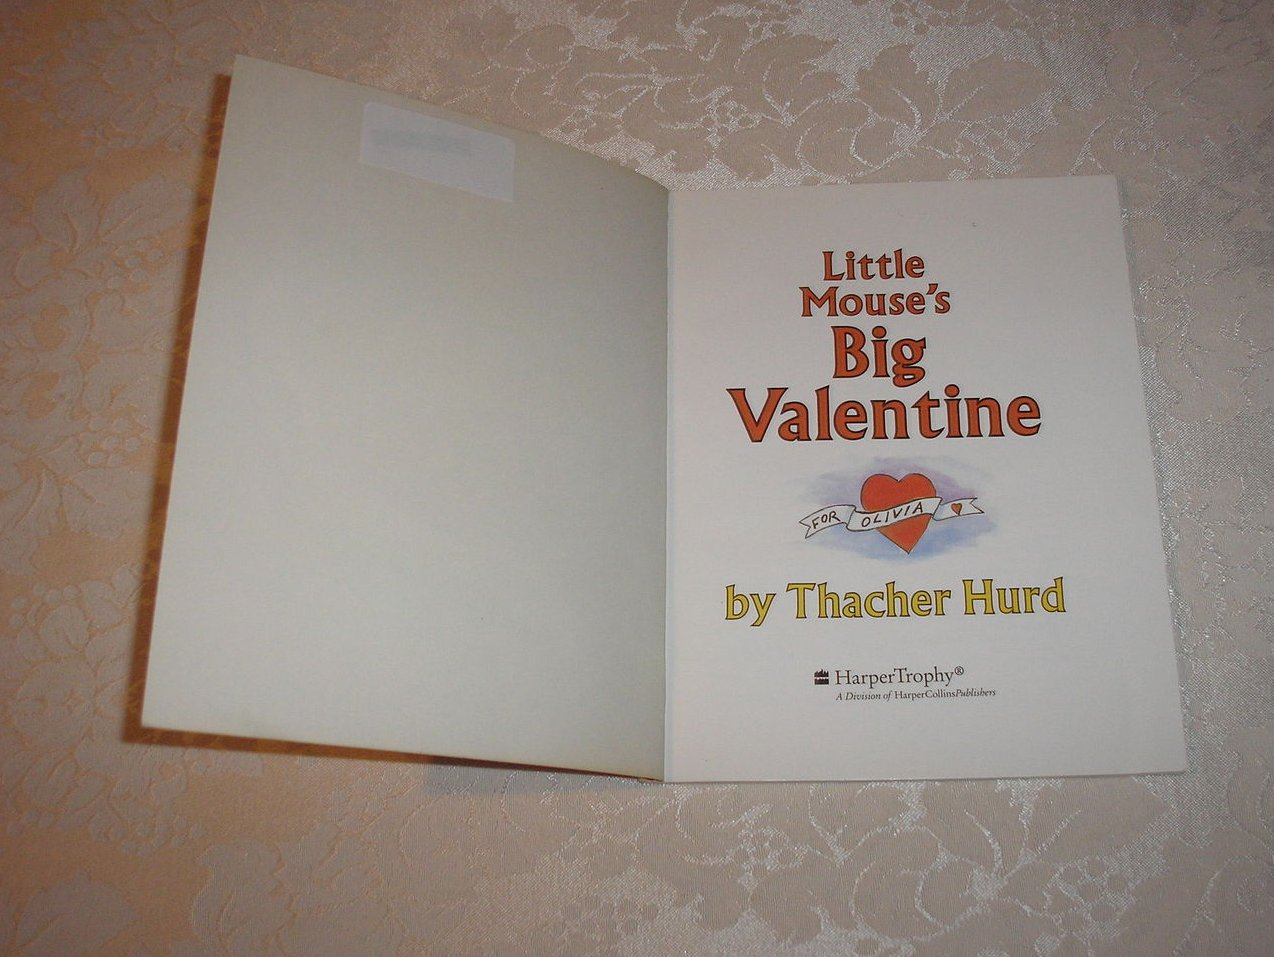 Image 1 of Little Mouse's Big Valentine Thacher Hurd good sc